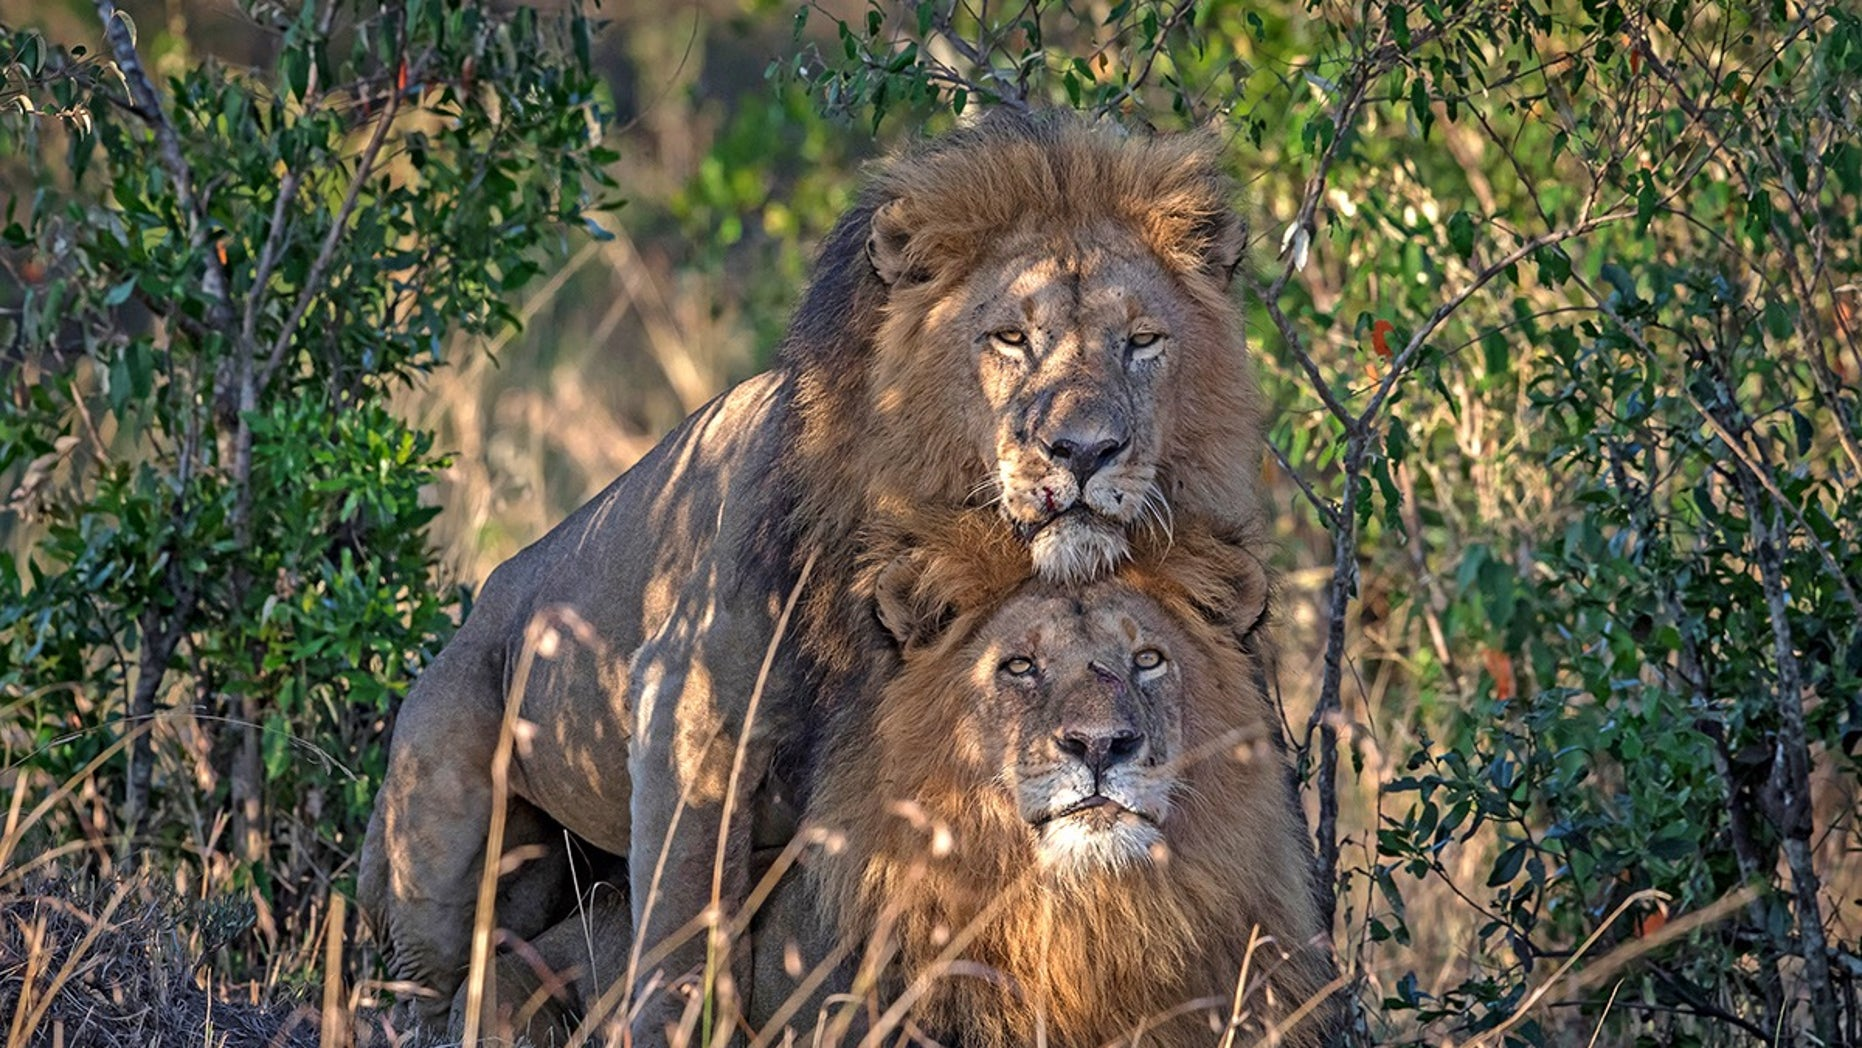 A wildlife photographer captured a stunning image of two male lions in Kenya's Masai Mara.